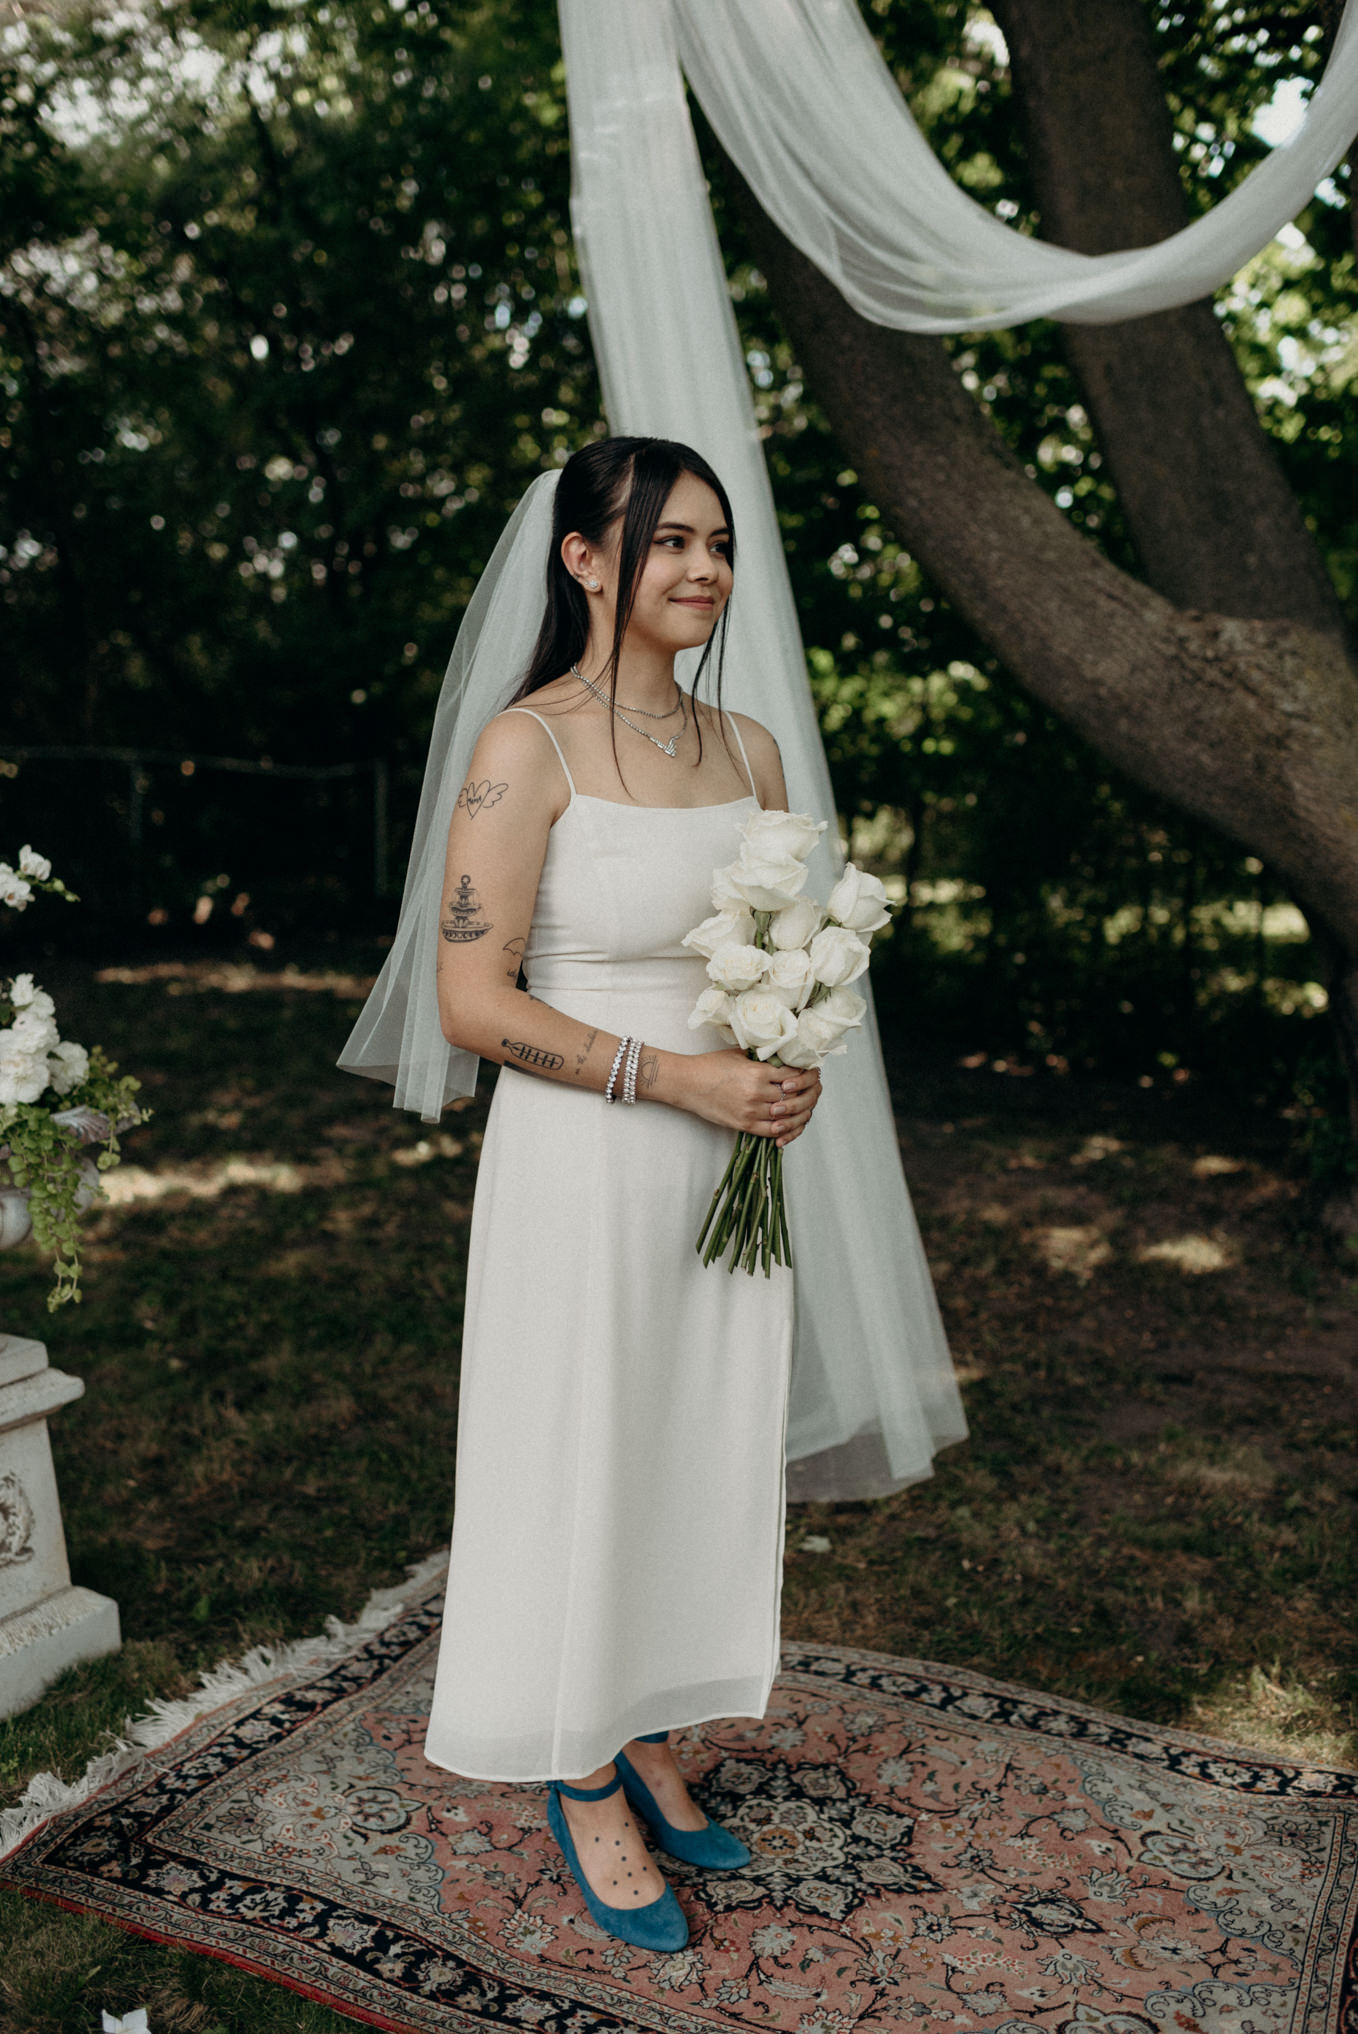 tattooed bride at outdoor ceremony